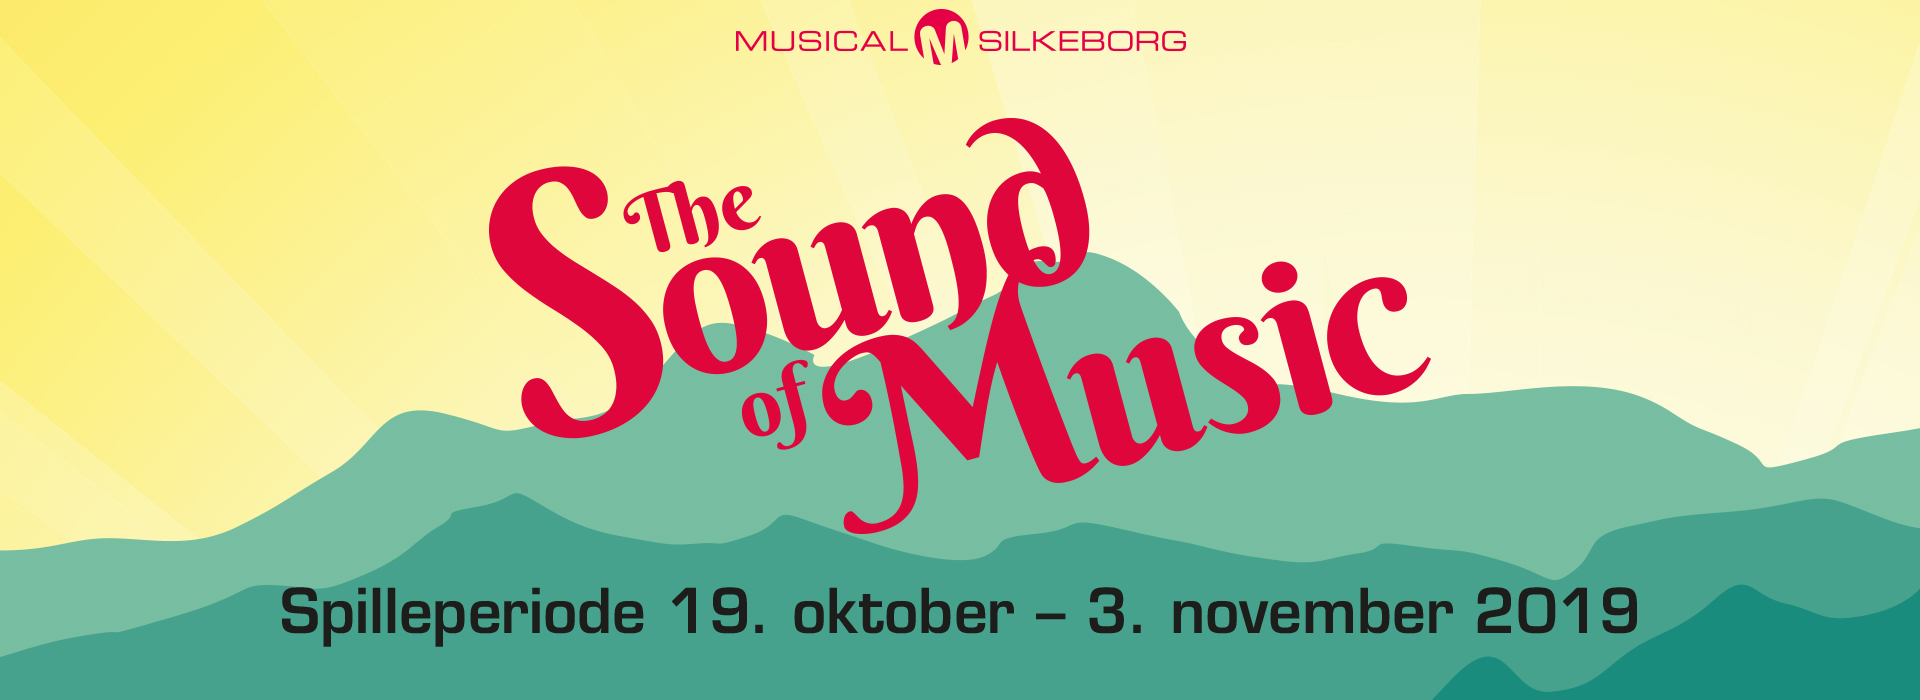 Website_Banner_SoundofMusic